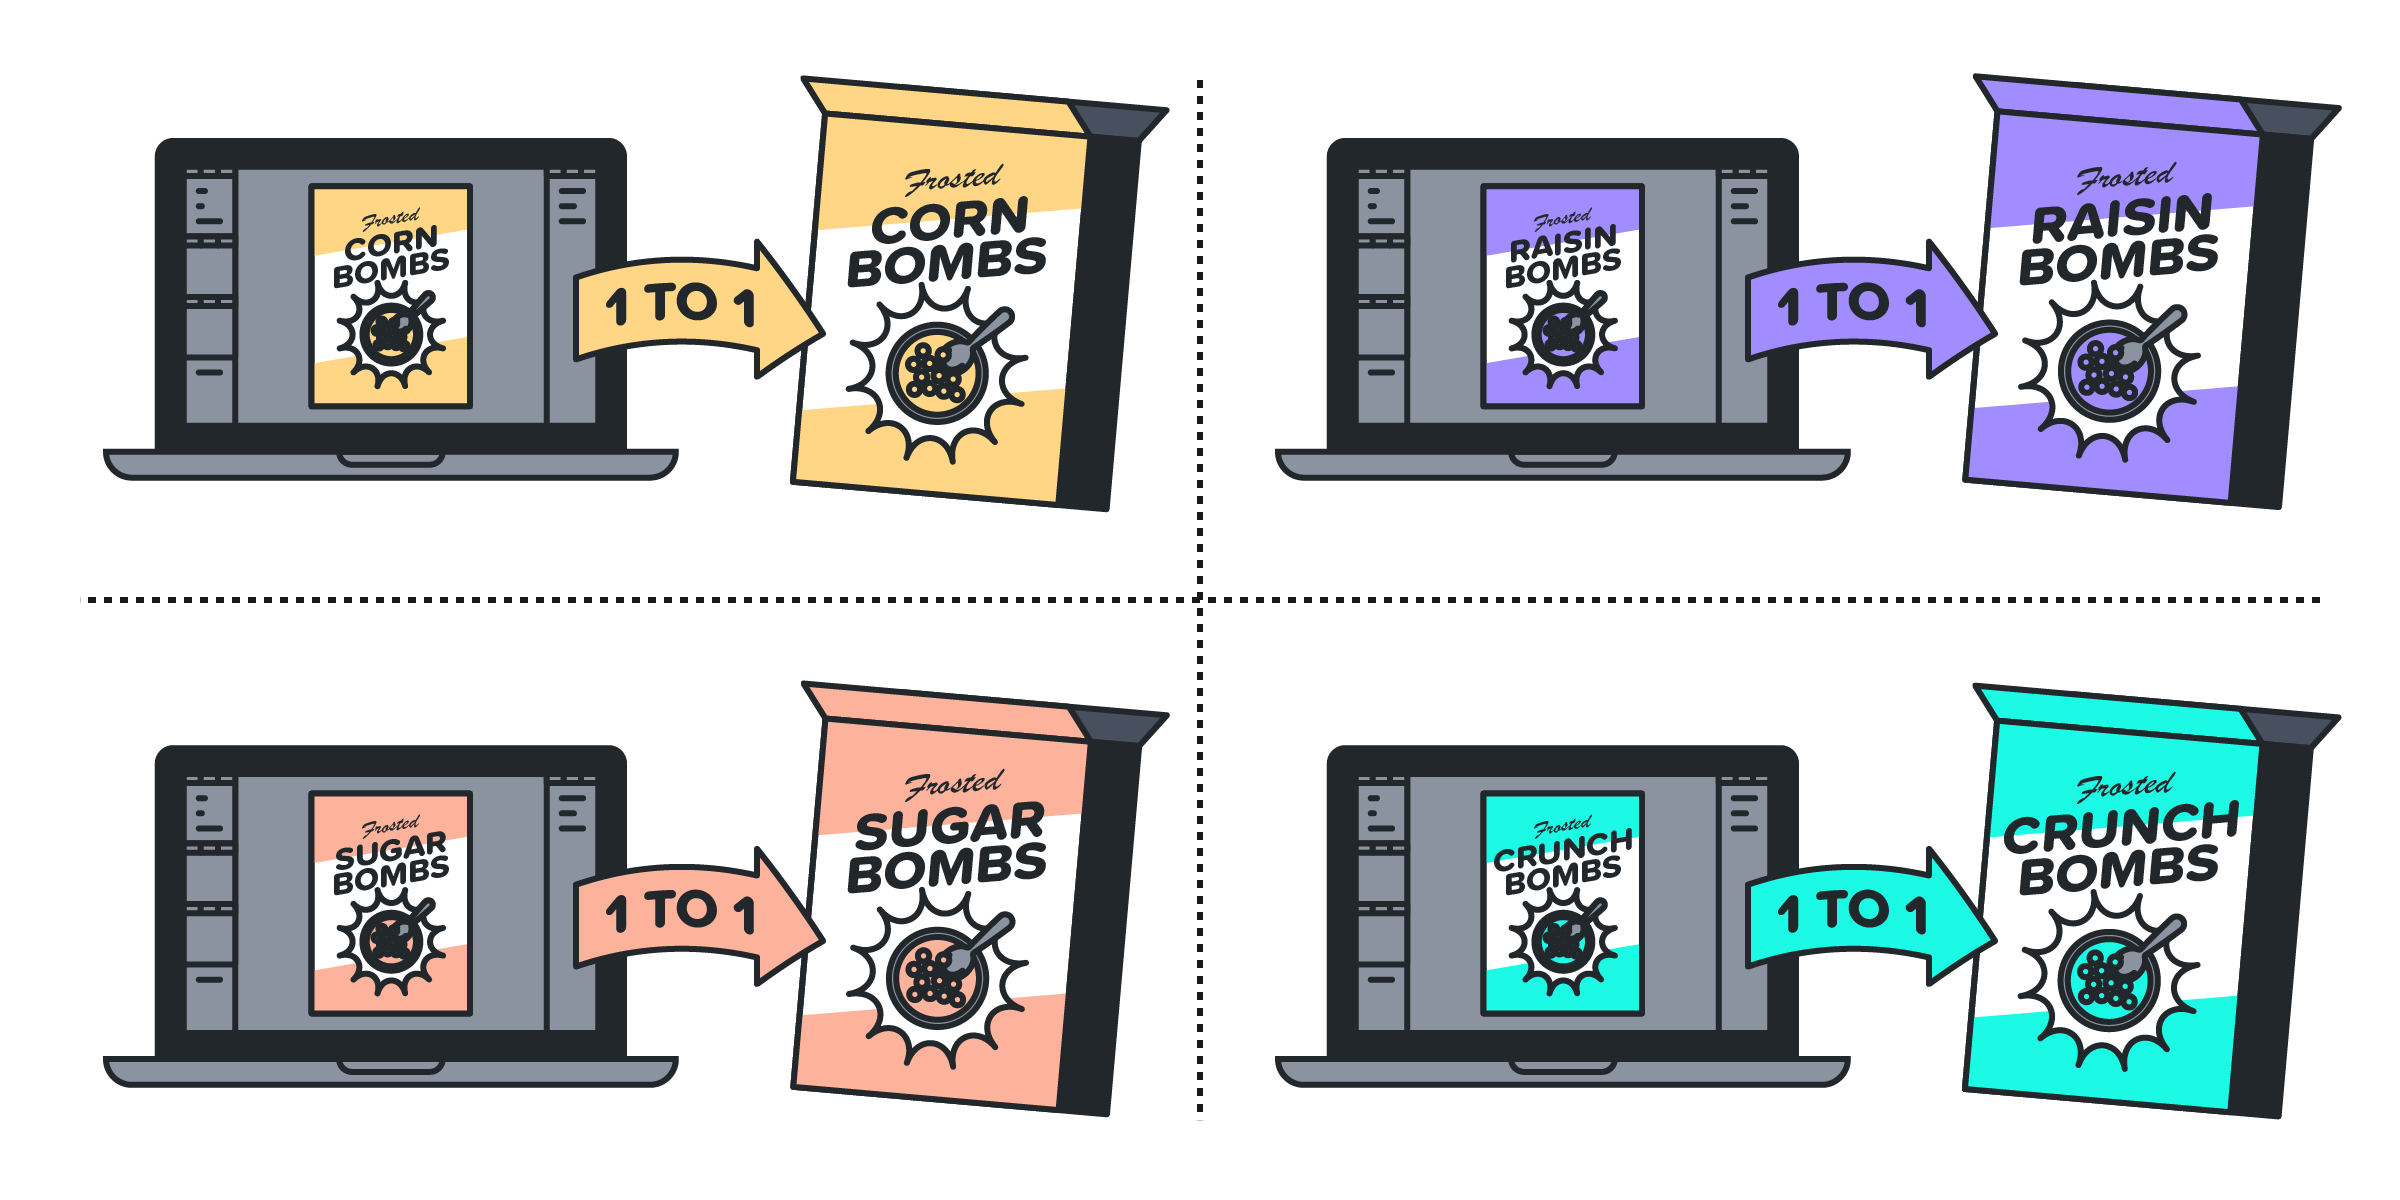 An illustration showing various cereal box art with a one-to-one relationship with its digital and physical versions.